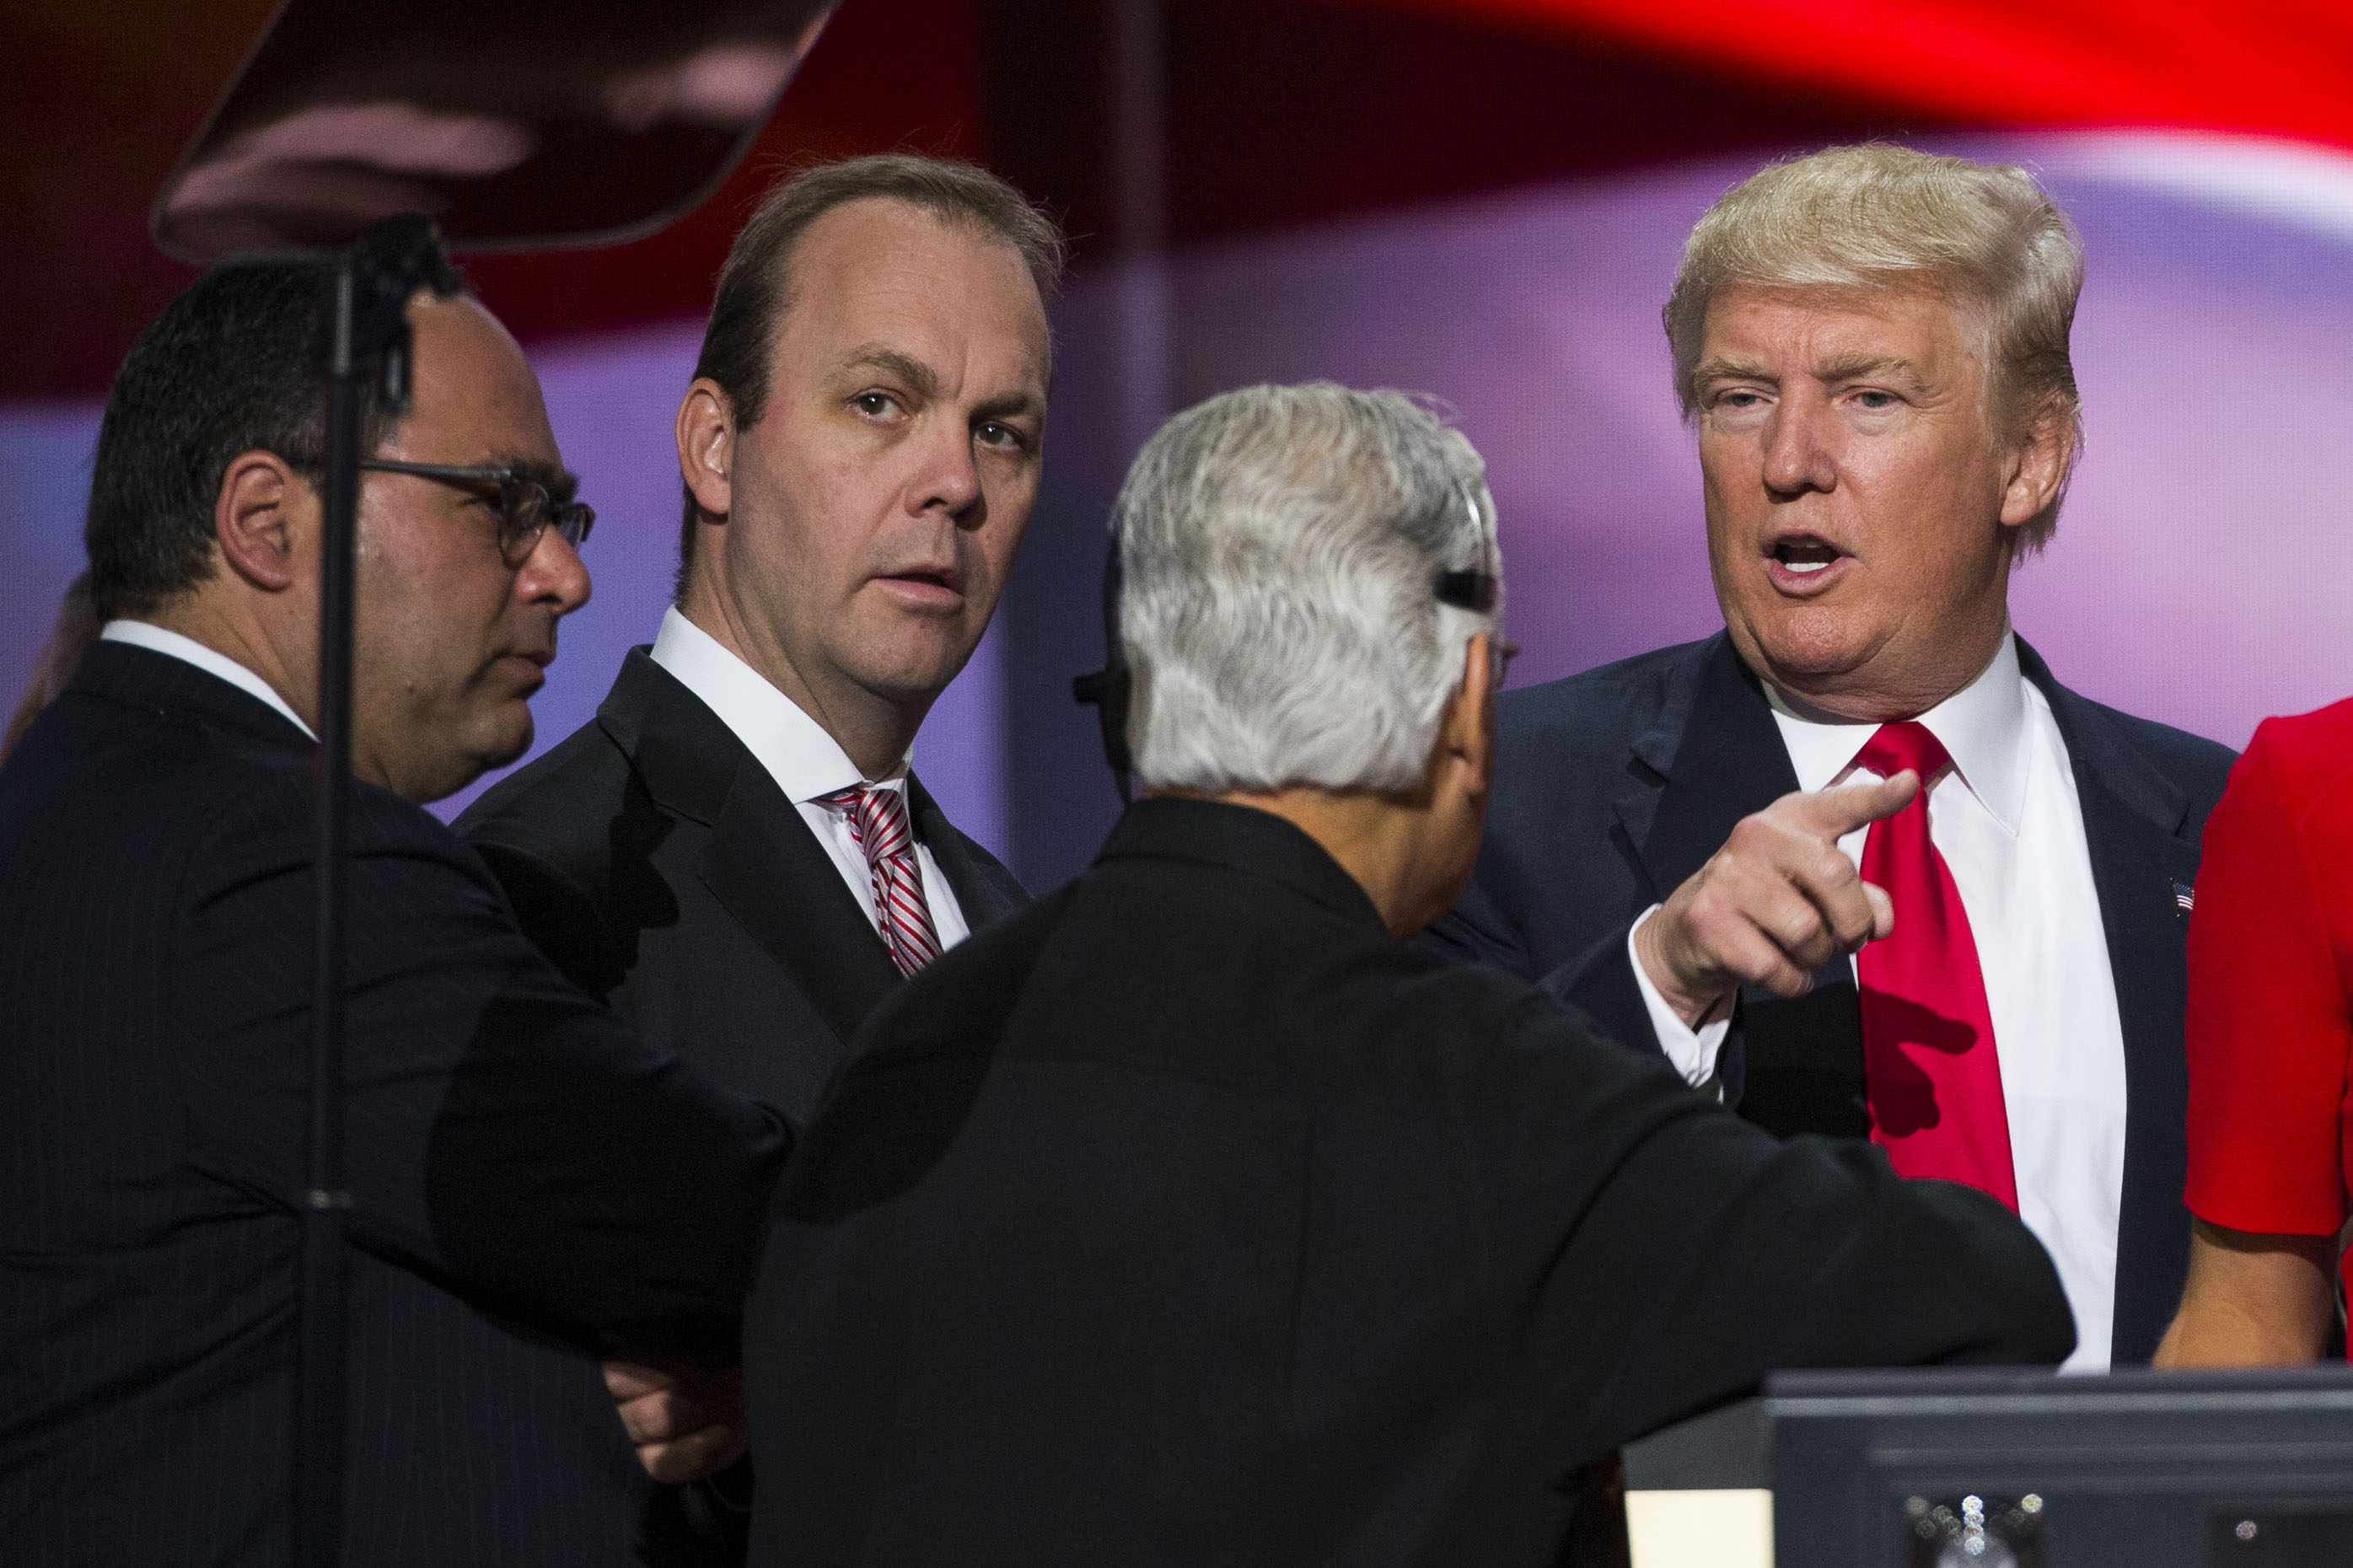 Republican nominee Donald Trump speaks with Rick Gates at the Republican Convention, July 21, 2016 at the Quicken Loans Arena in Cleveland.